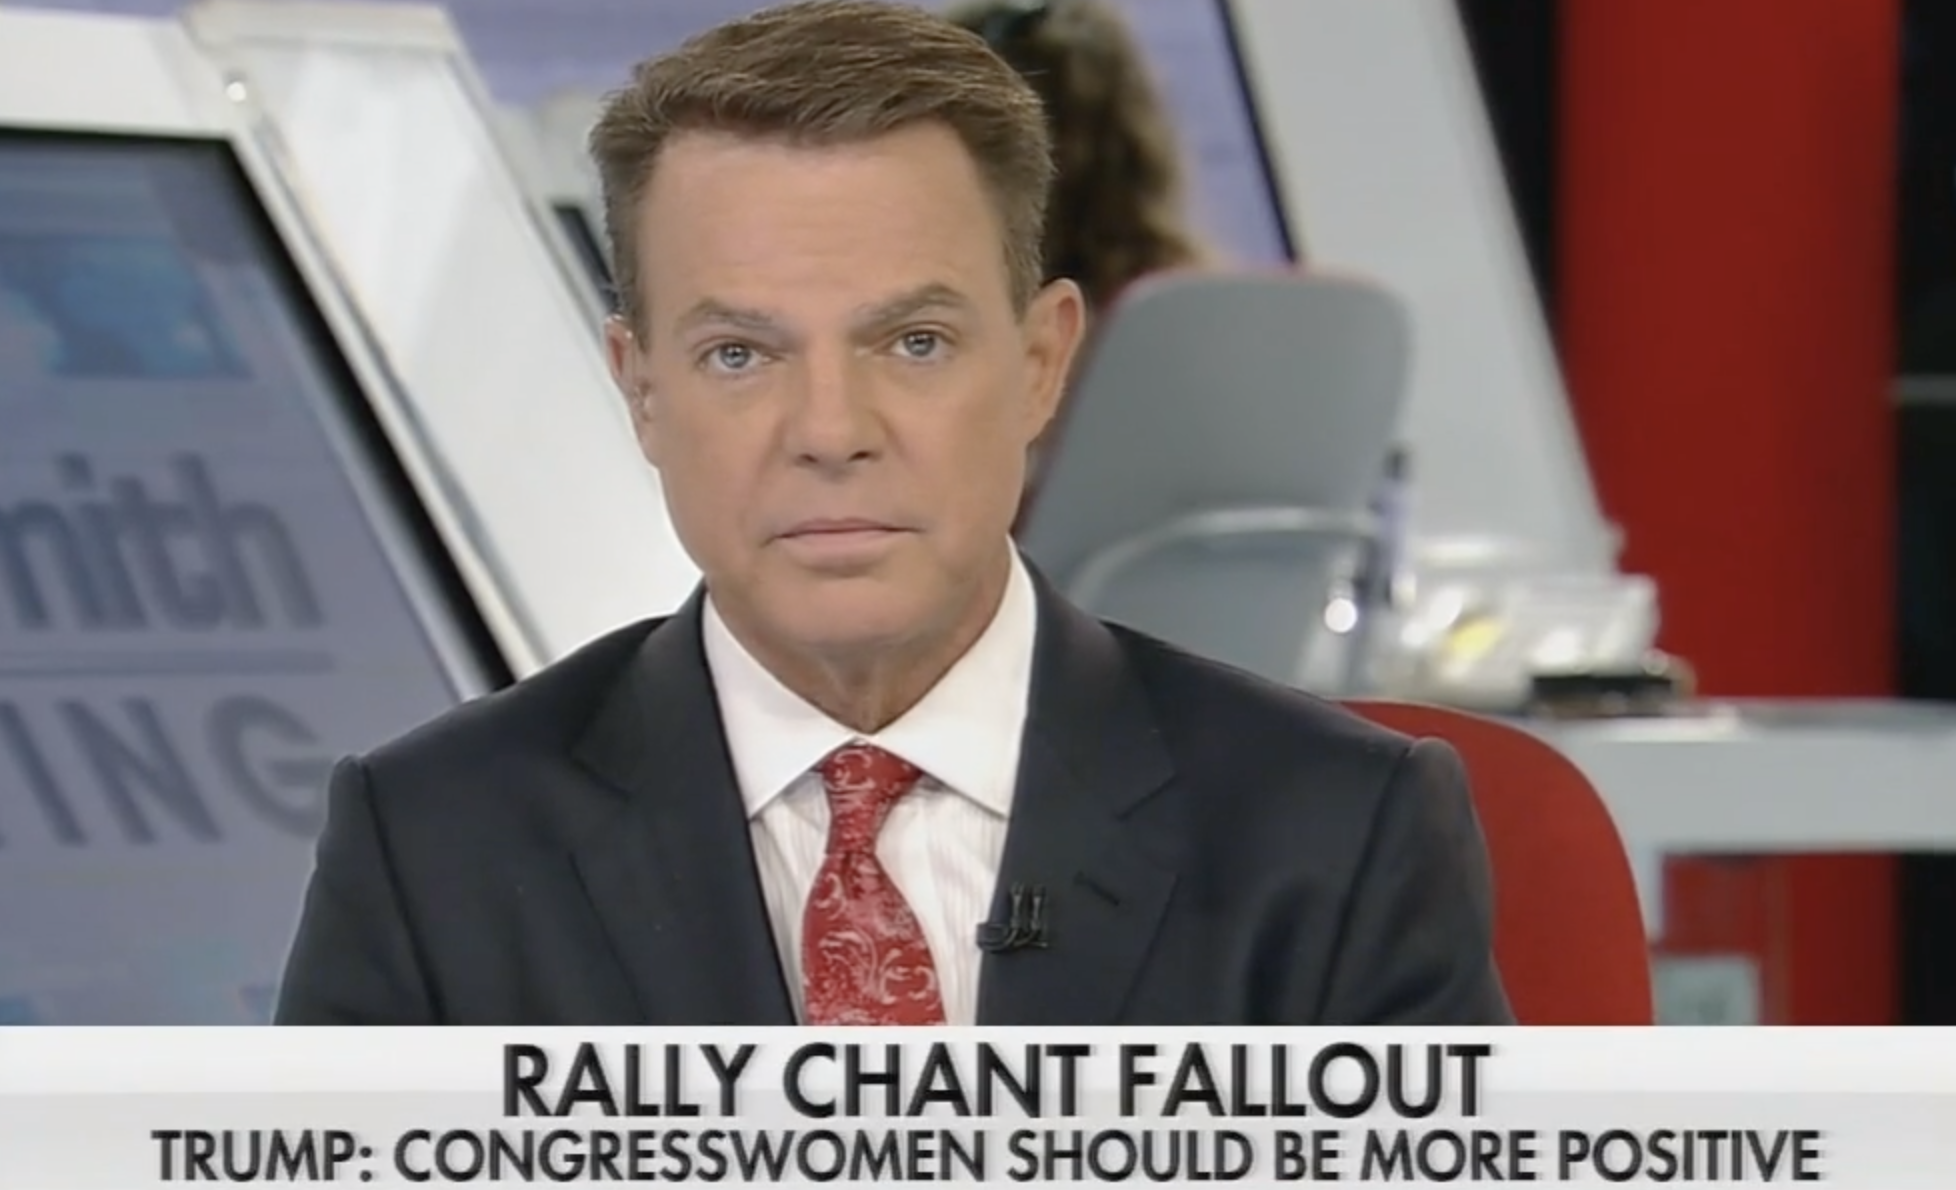 Shep Smith Fact-Checks Trump's Lies About Rally Chant